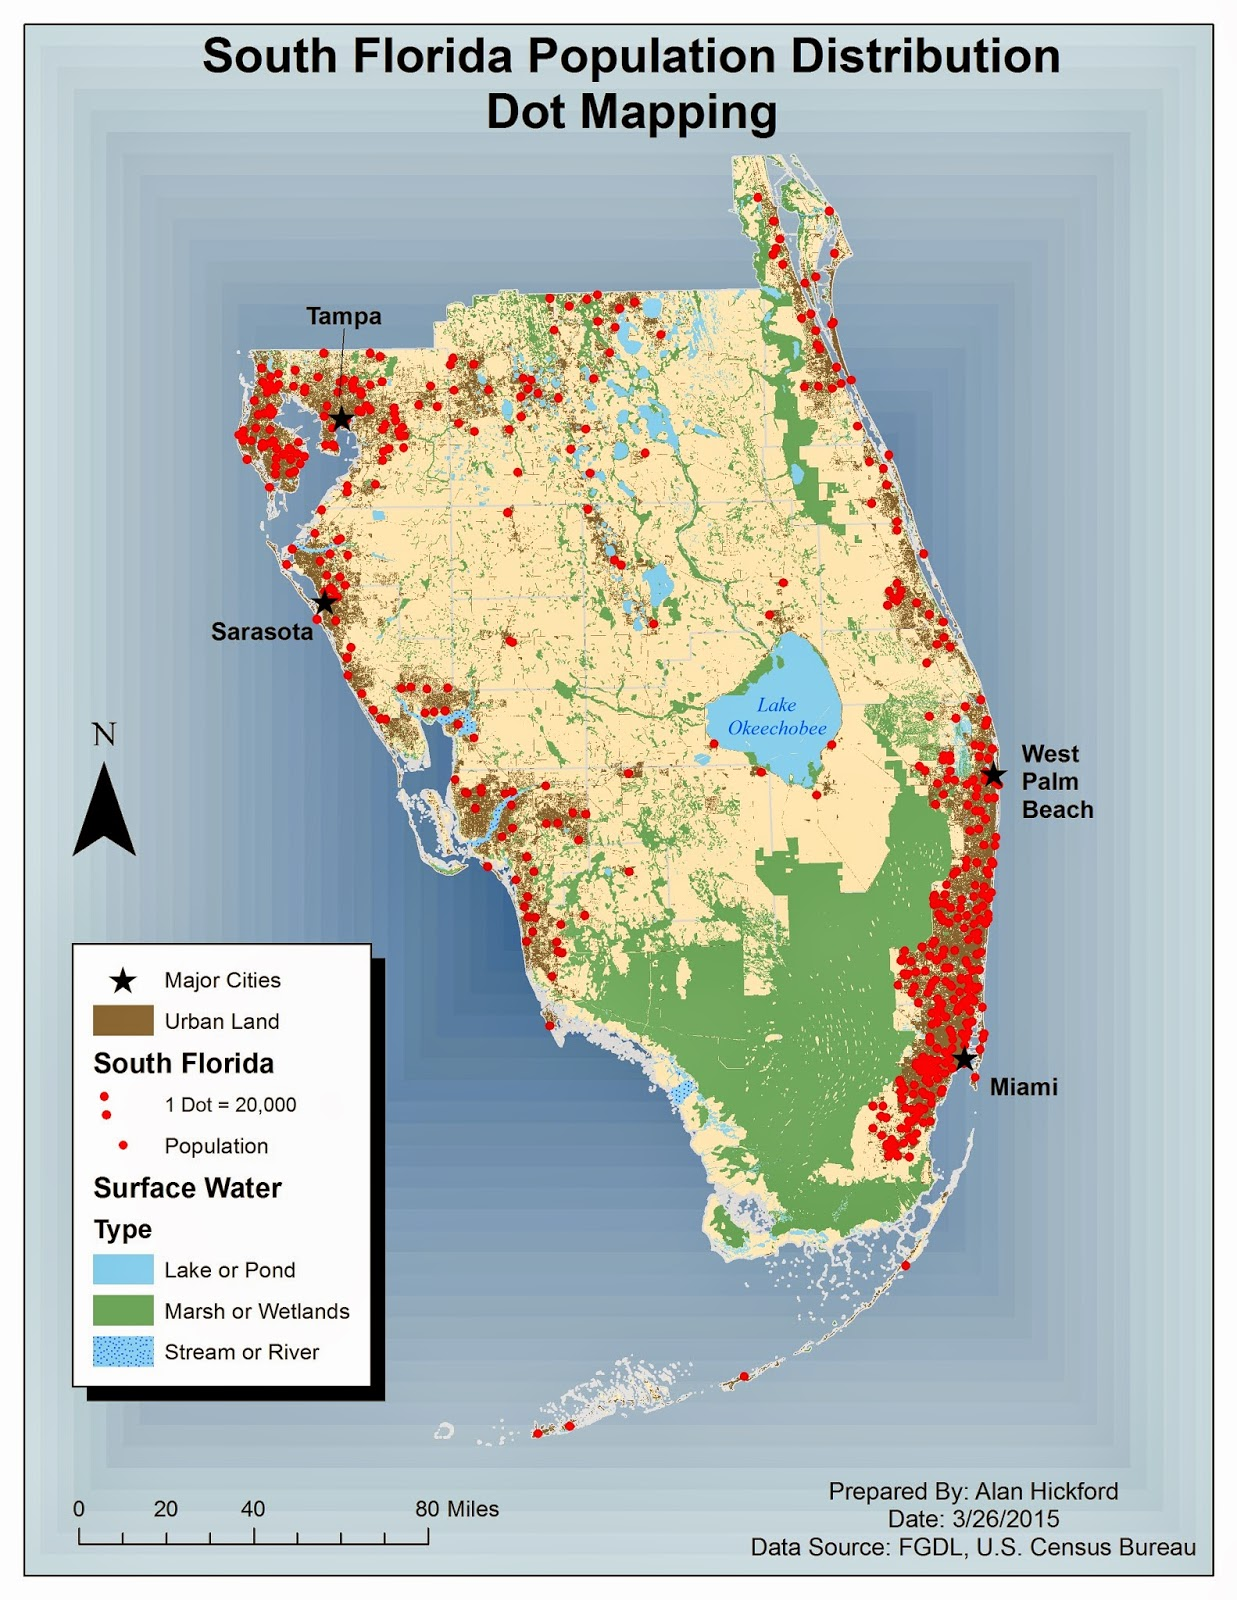 the overall background a nice gradient fill color which i feel helps make the map stand out below is my map of population density of south florida